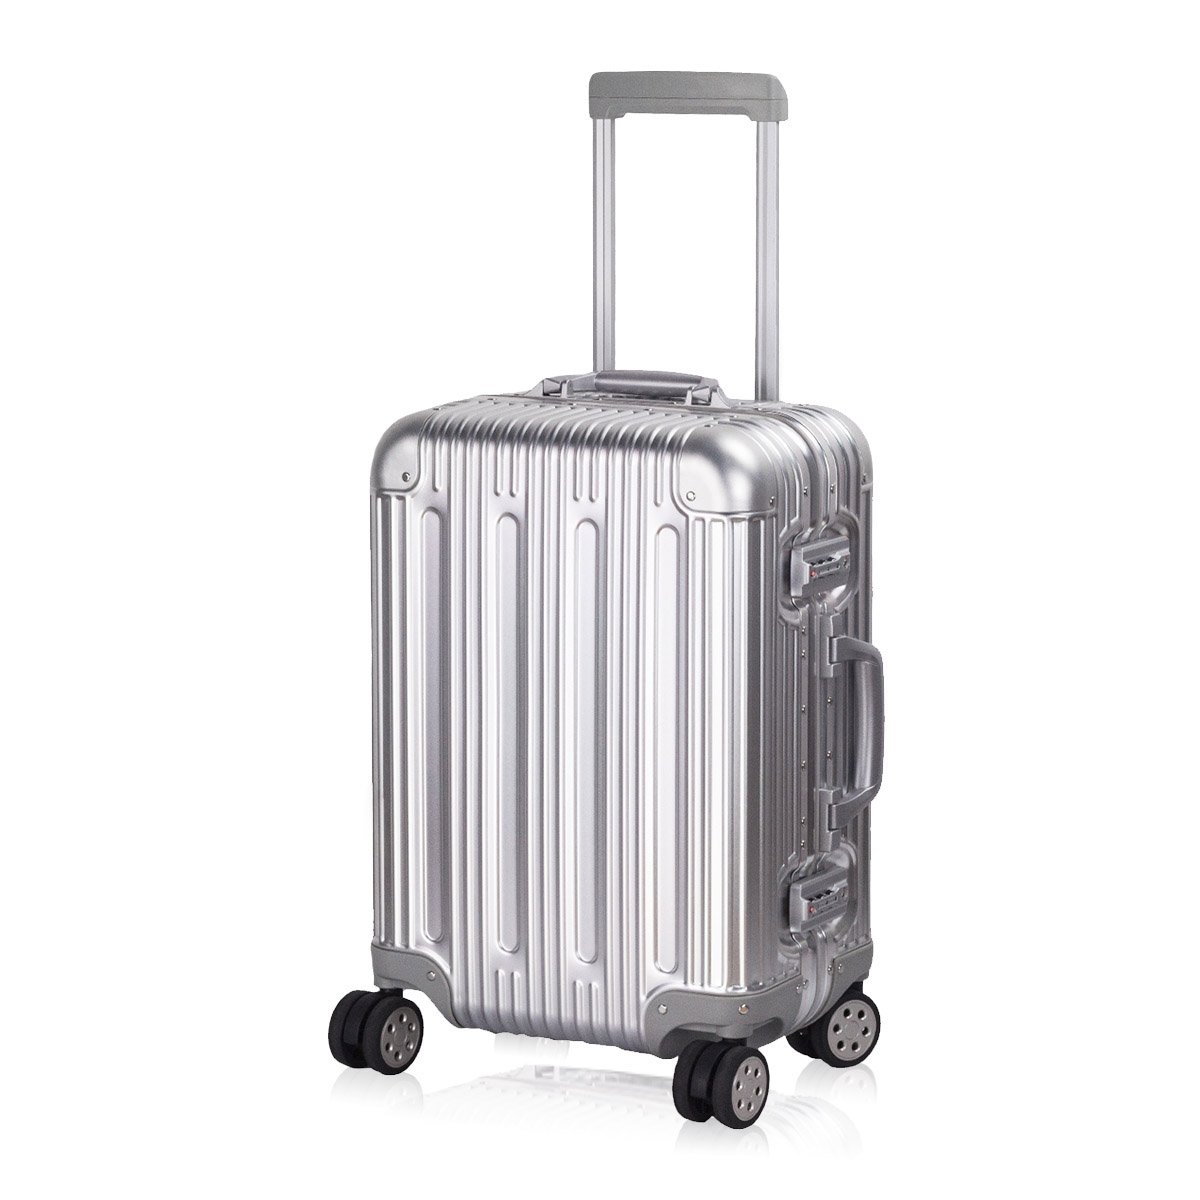 Carry on Spinner Suitcase 20 inch Travel Luggage Upright All Aluminium TSA Approved Hardside Trolley with Double Wheels and Free Travel Organizer for Air Trip Weekenders by TravelKing (Silver) by TravelKing